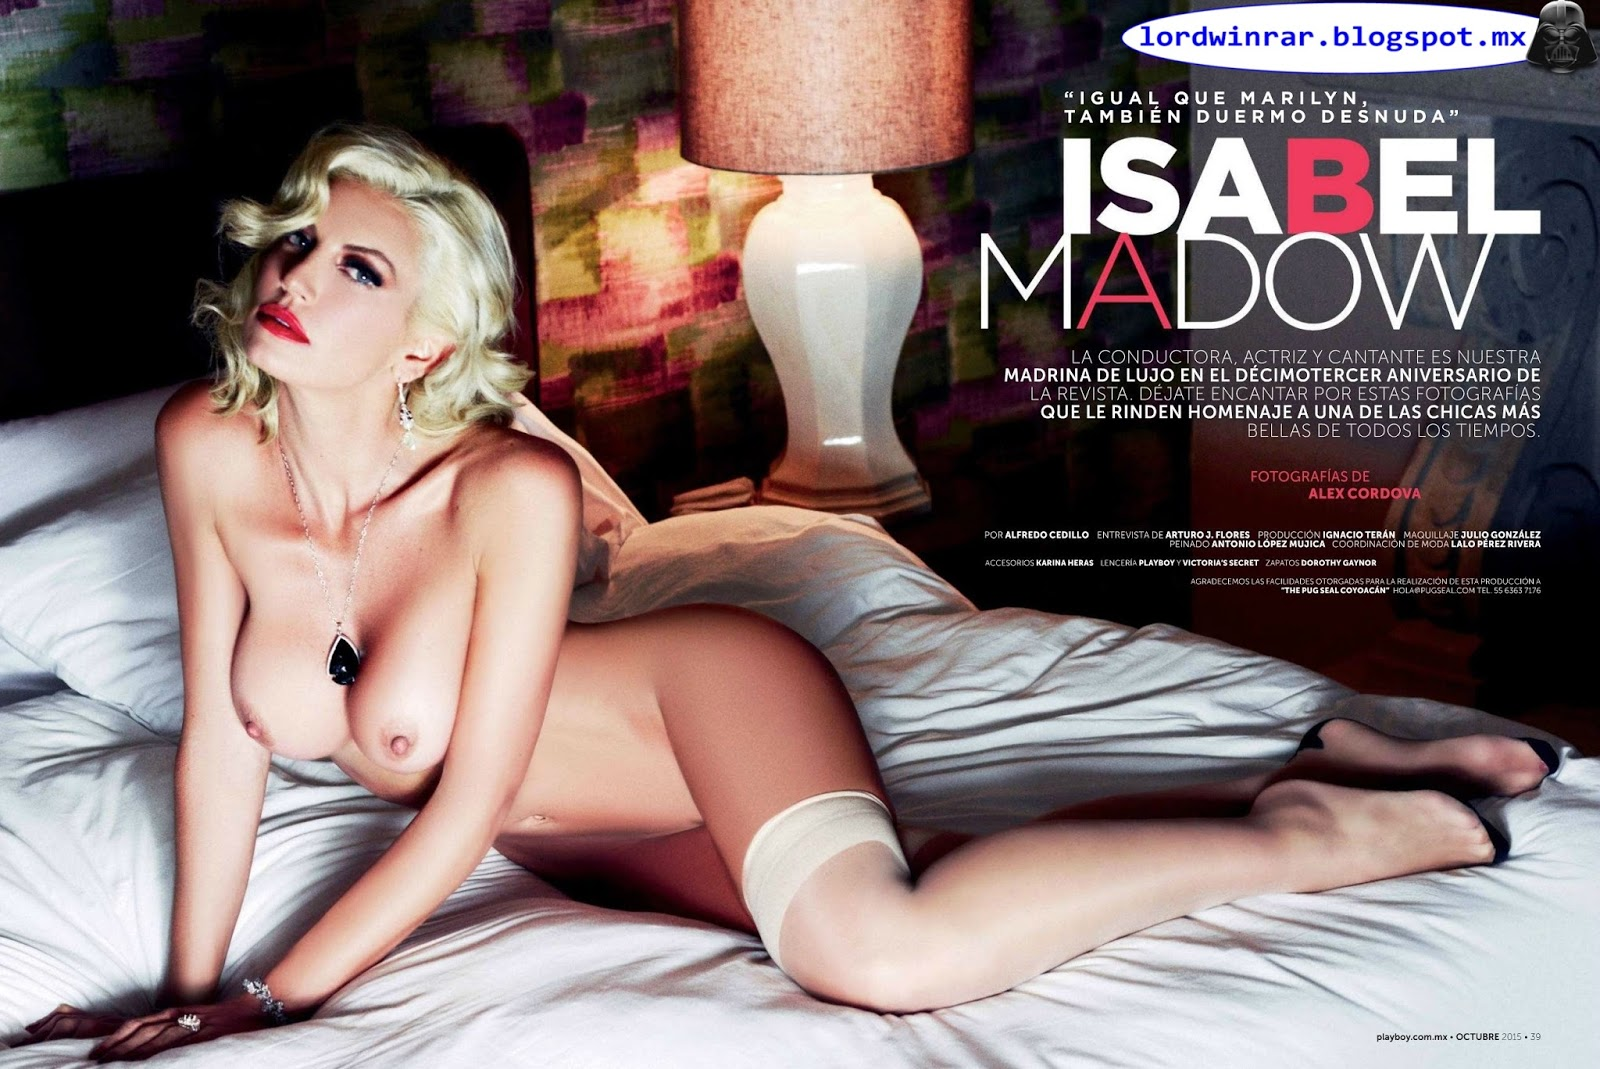 Isabel madow porn video excited too